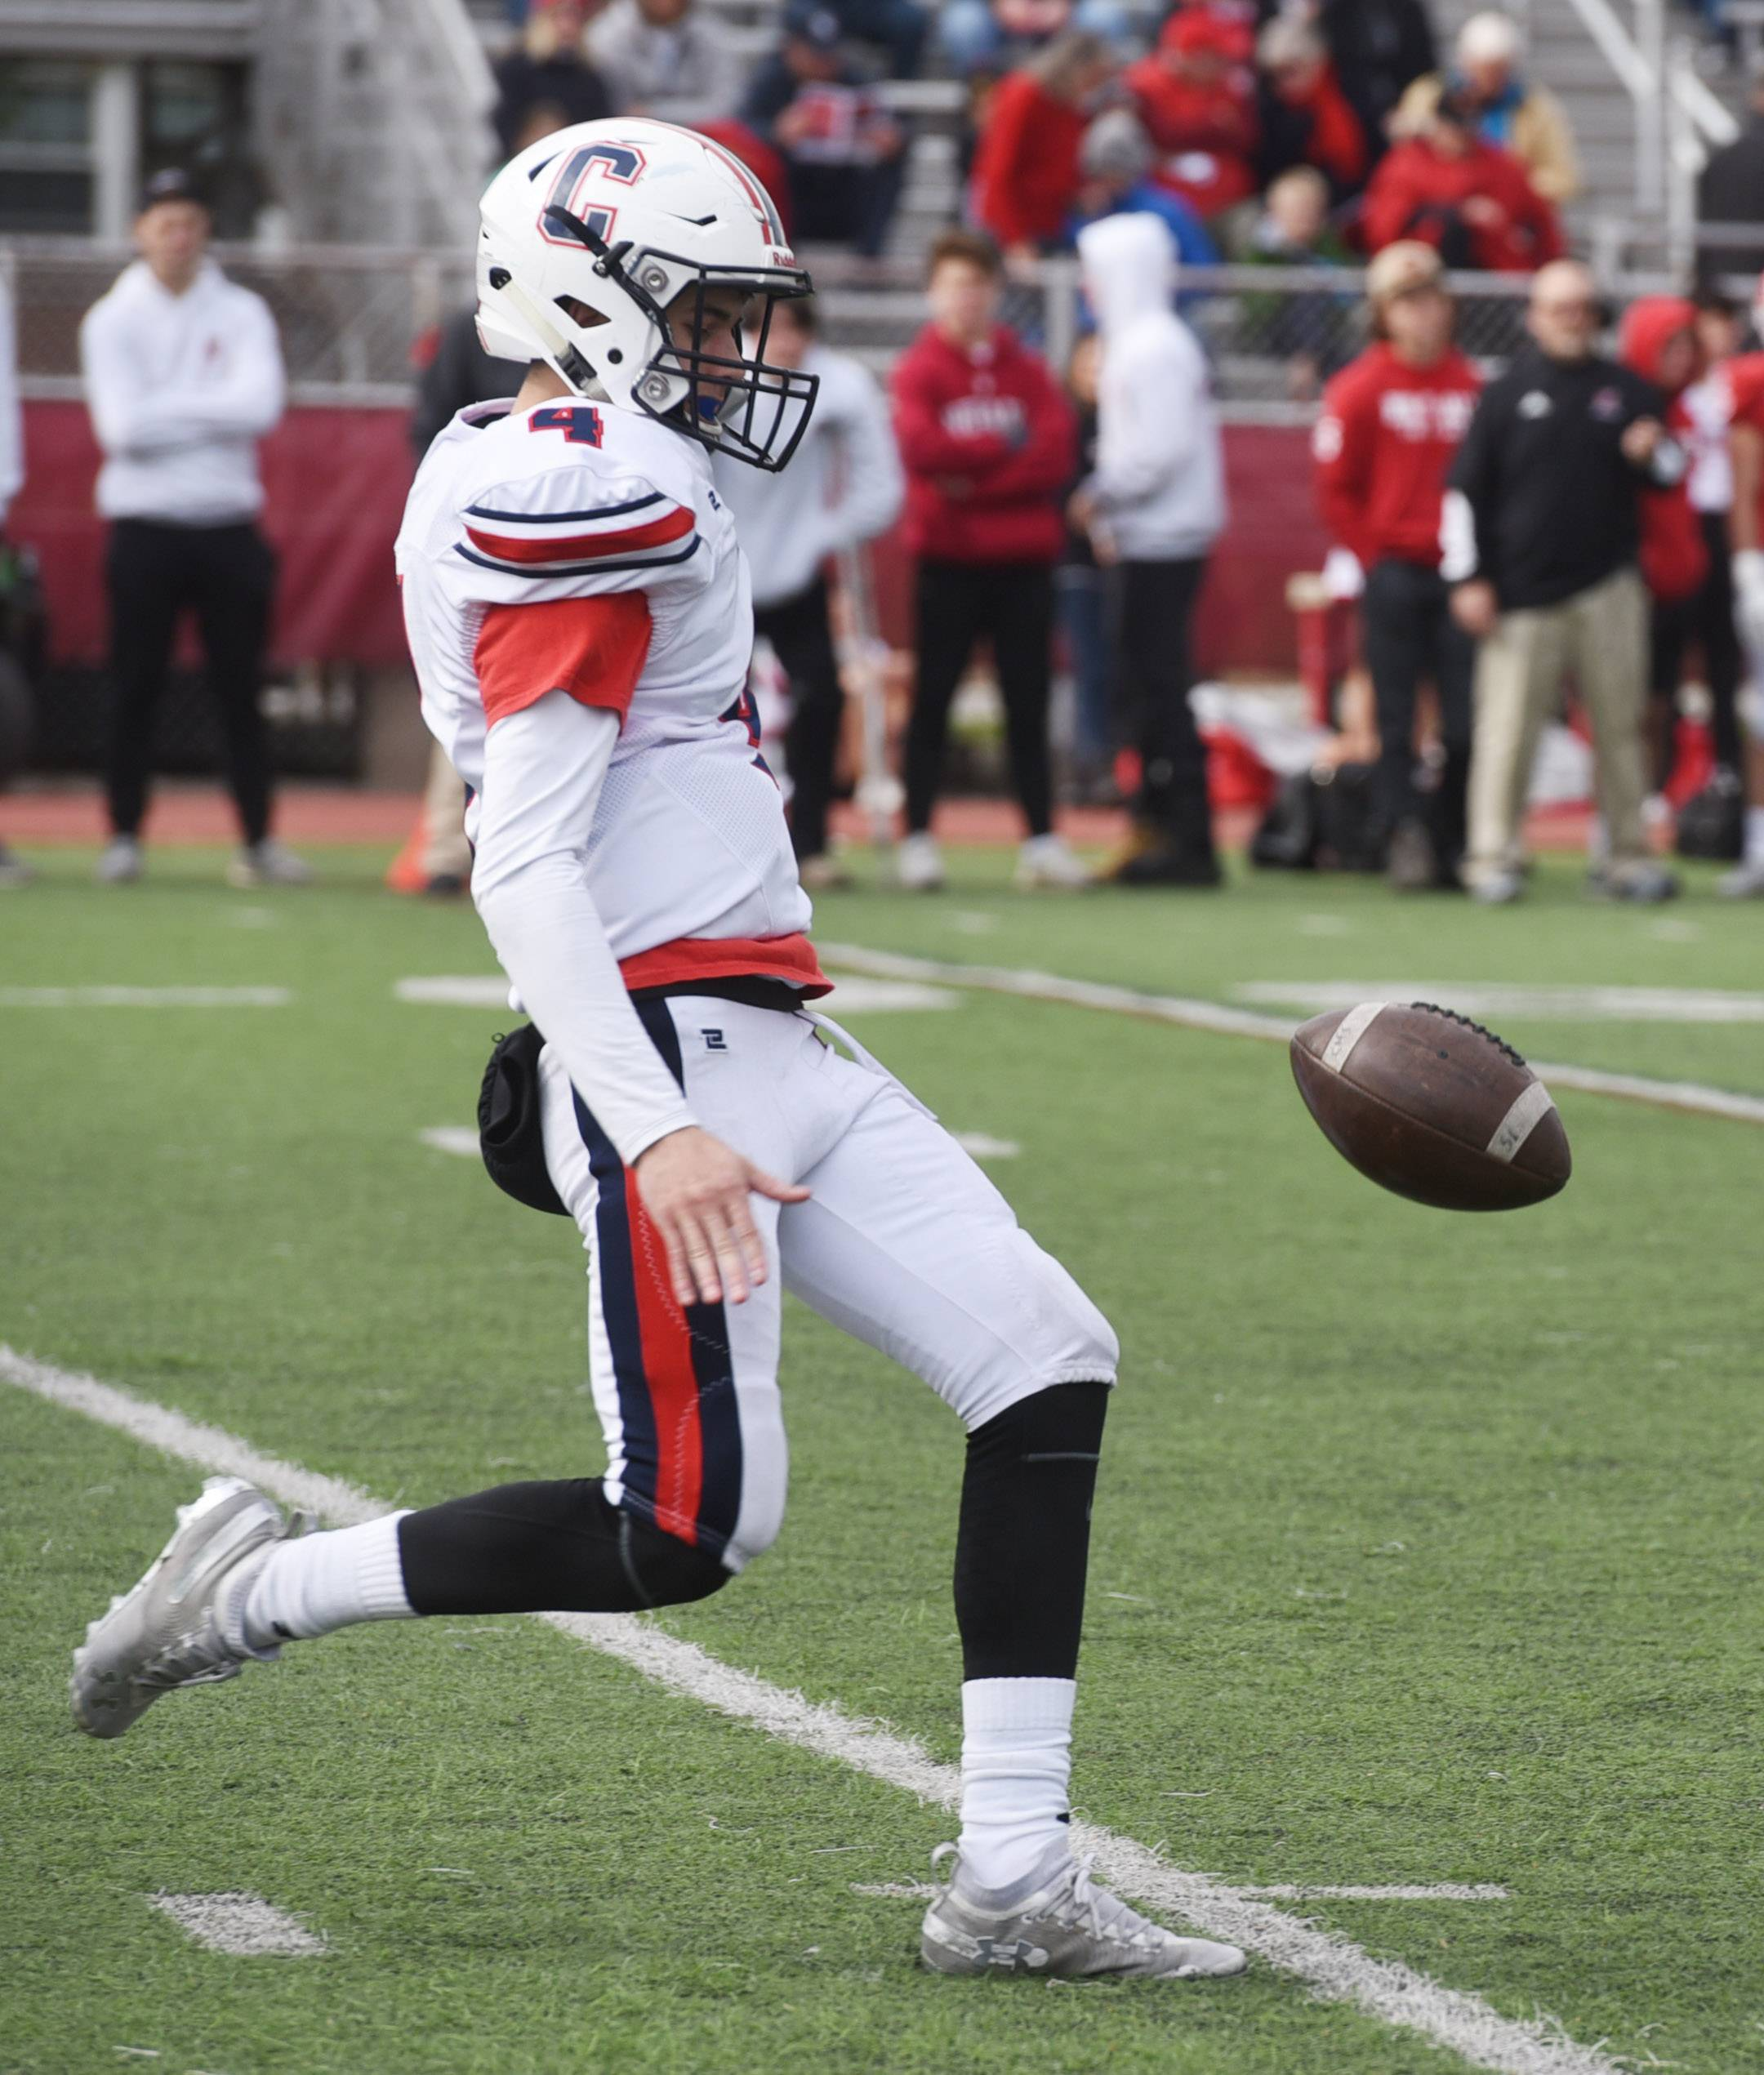 Conant's Kevin Polaski punts during Saturday's Class 8A playoff game against Hinsdale Central.